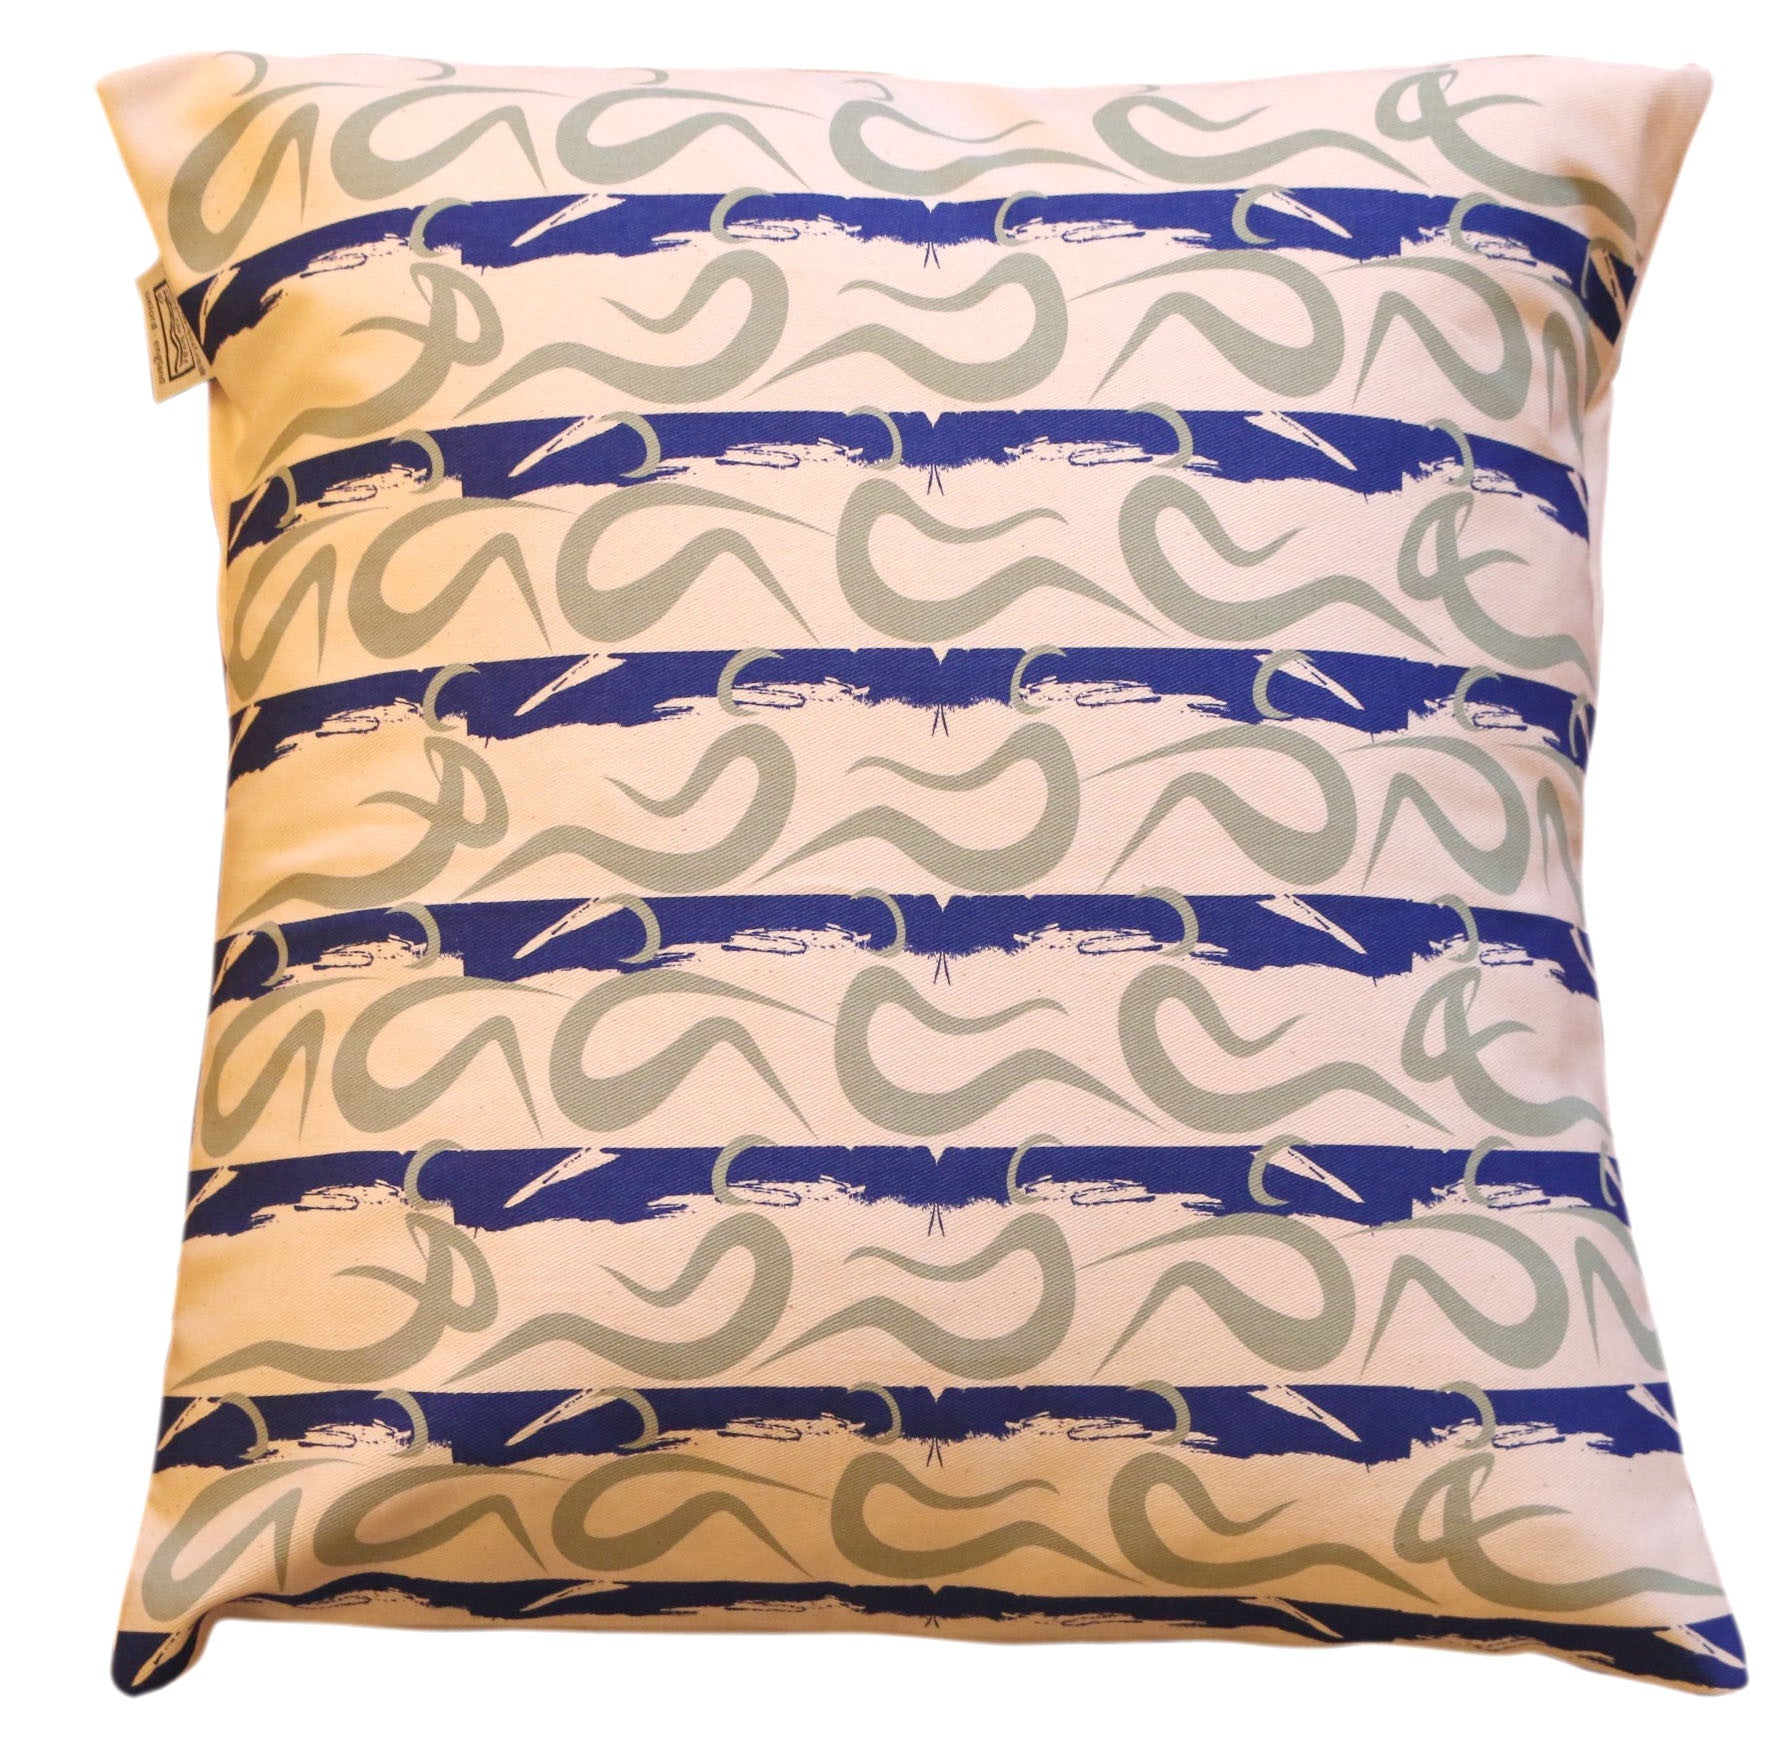 Language of Rowing Cushion Cover